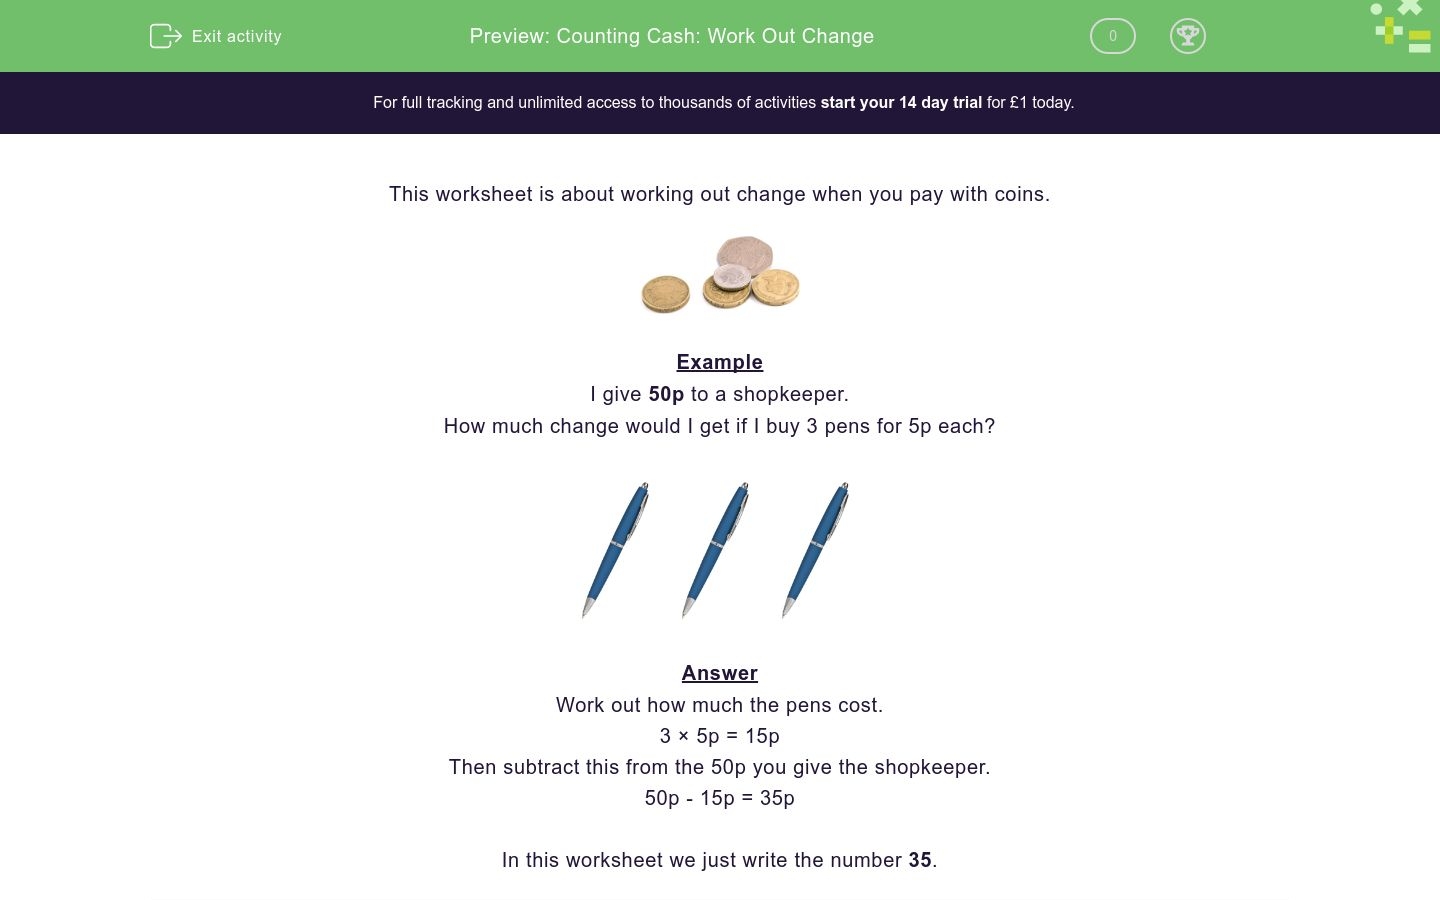 'Counting Cash: Work Out Change' worksheet